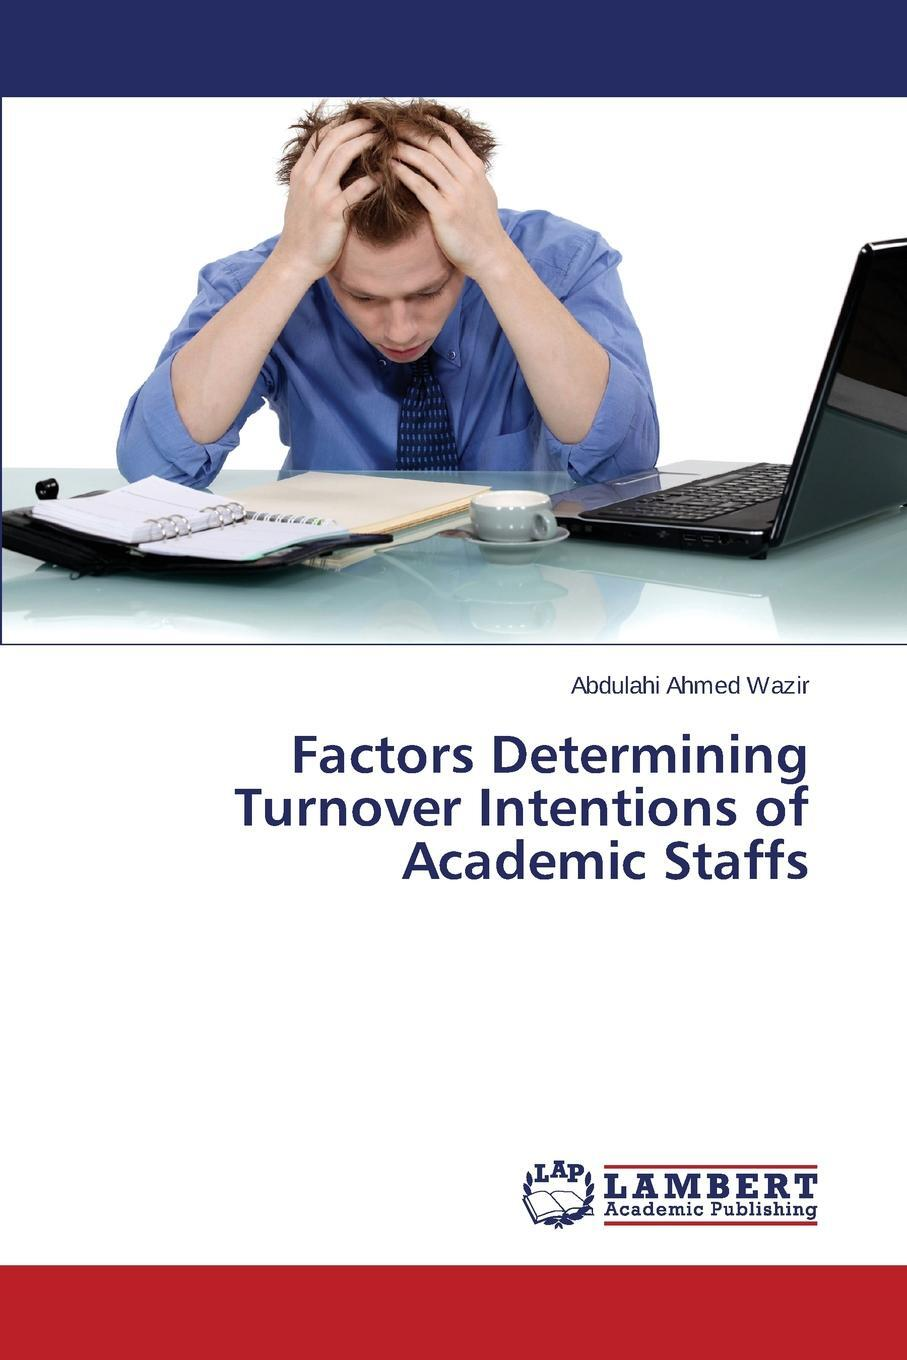 Factors Determining Turnover Intentions of Academic Staffs